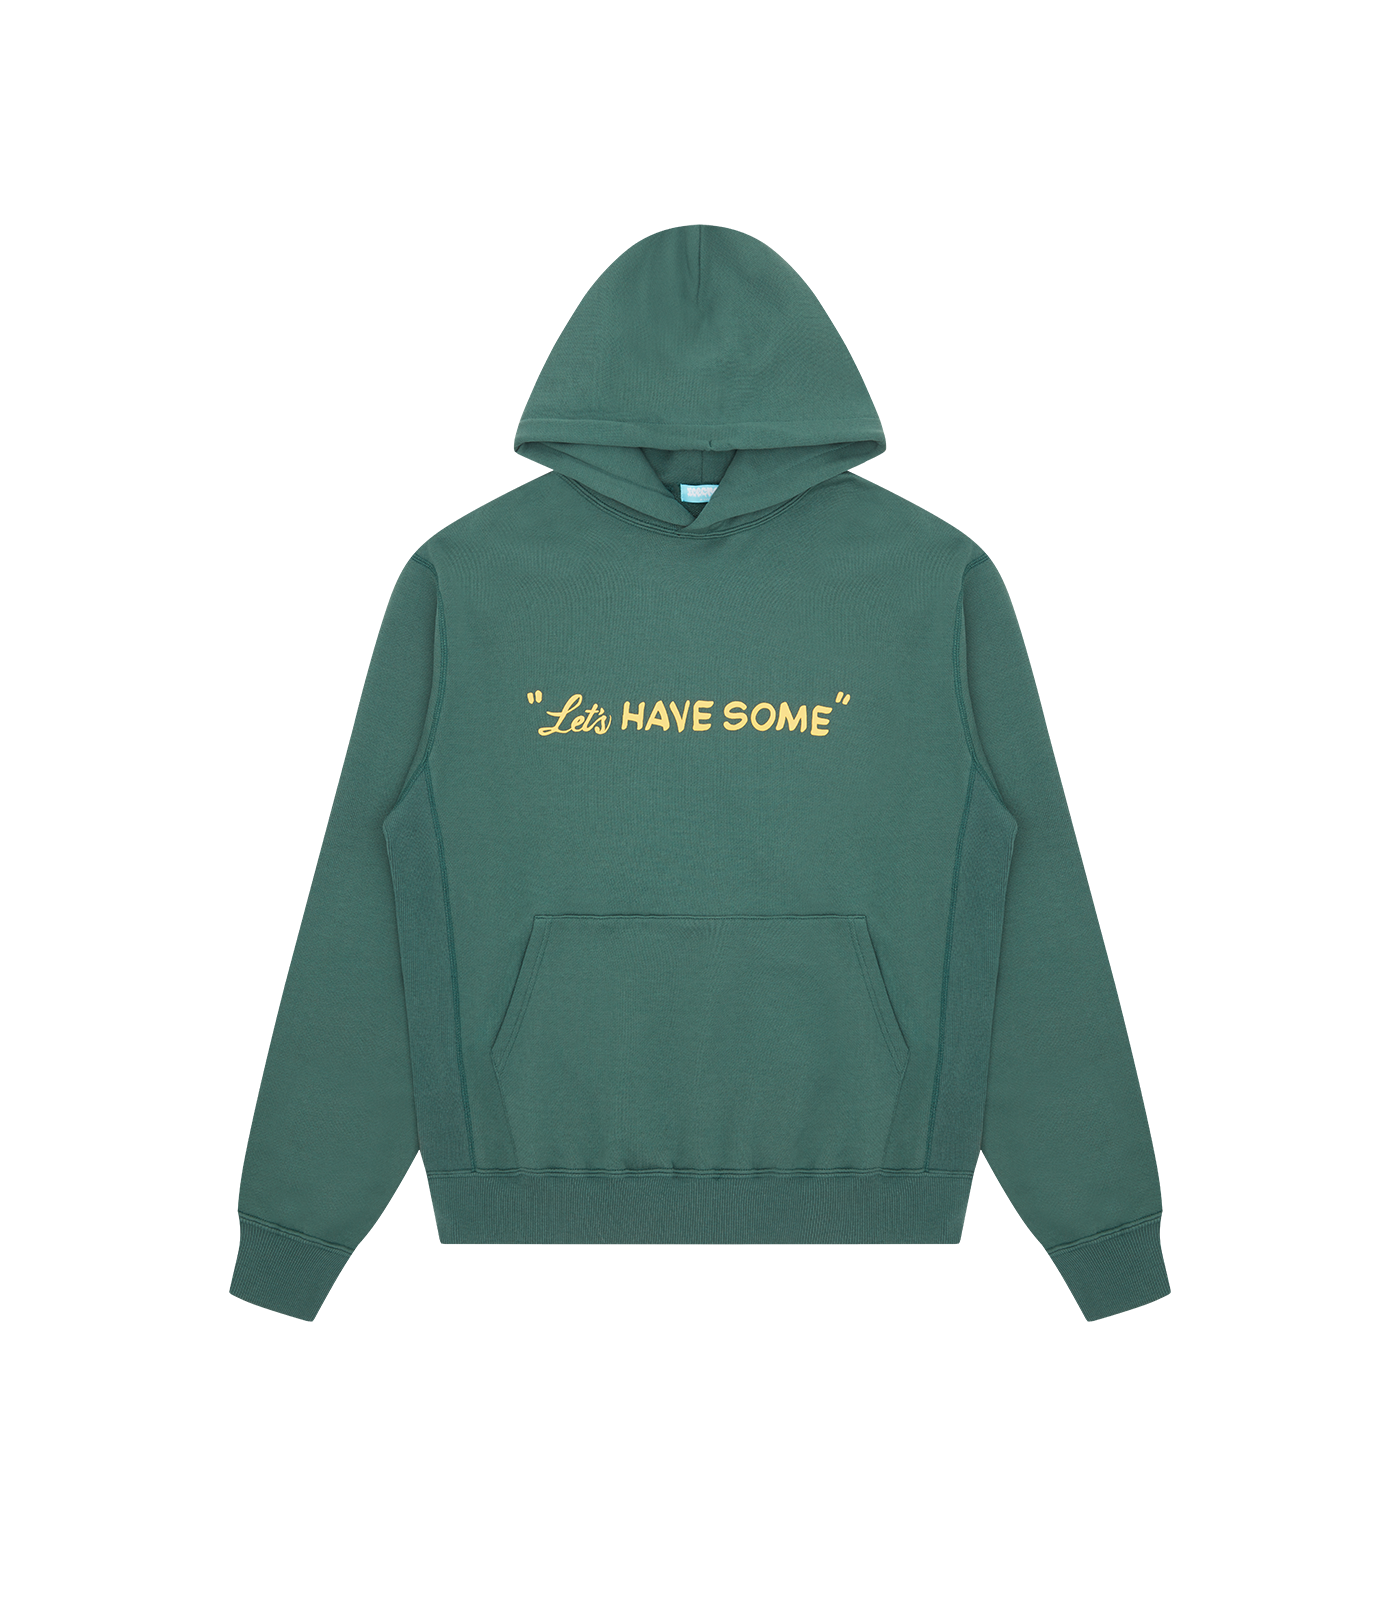 """Let's HAVE SOME"" HOODIE - GREEN"